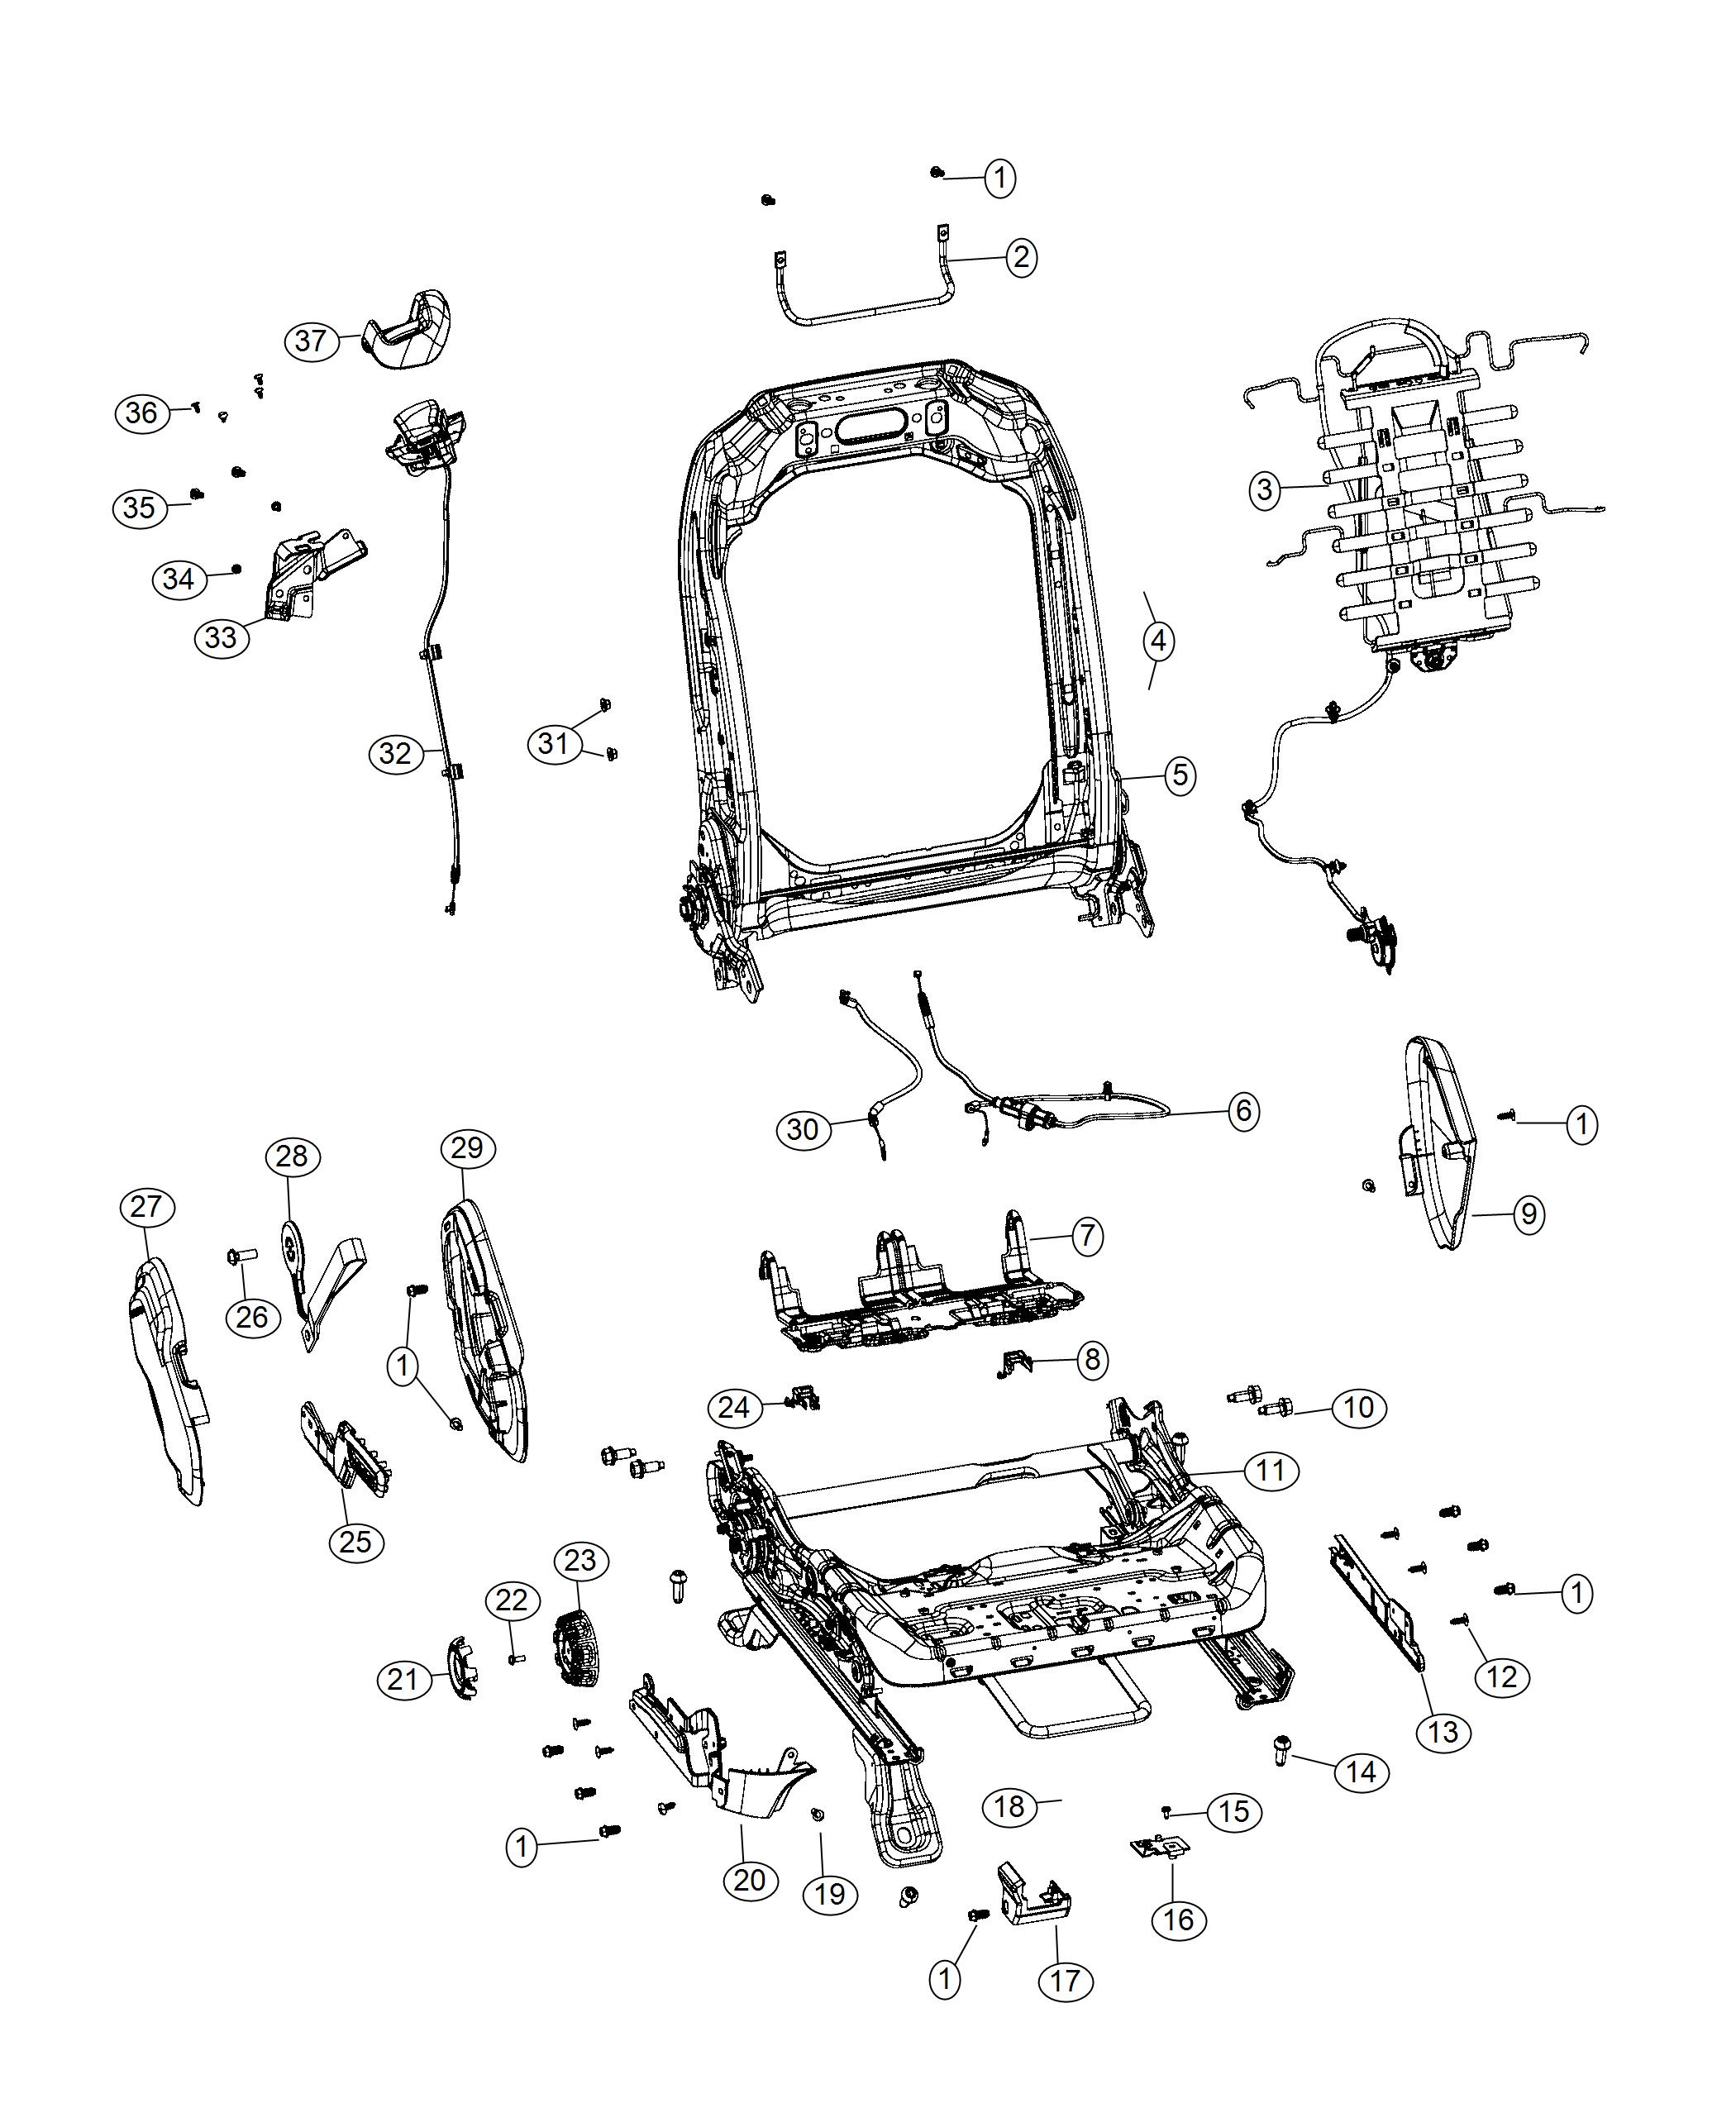 Jeep Wrangler Used For Handle And Cable Seat Release